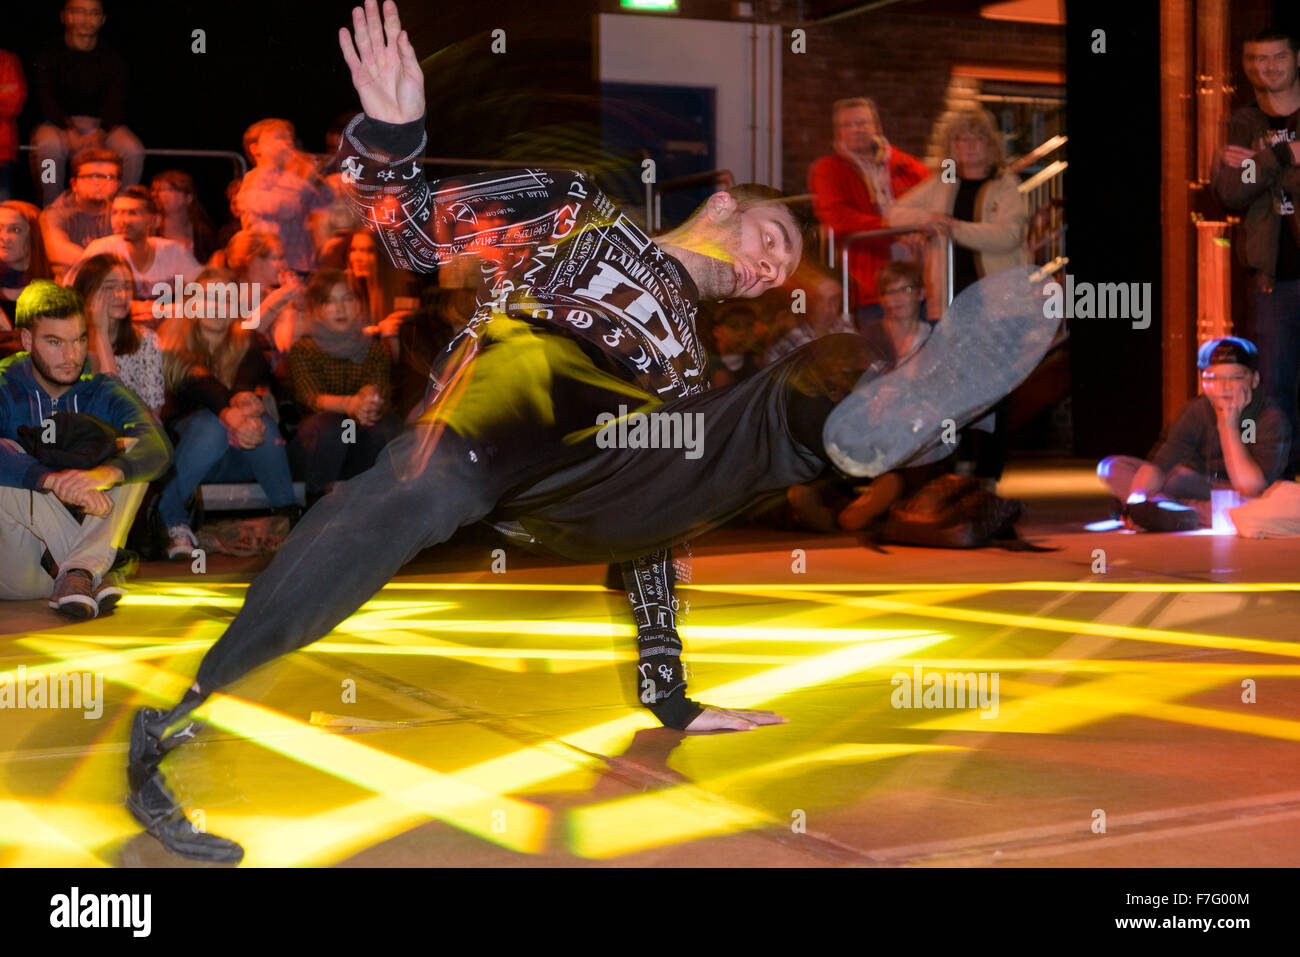 A young break dancer performs on a stage at a break dance competition. - Stock Image